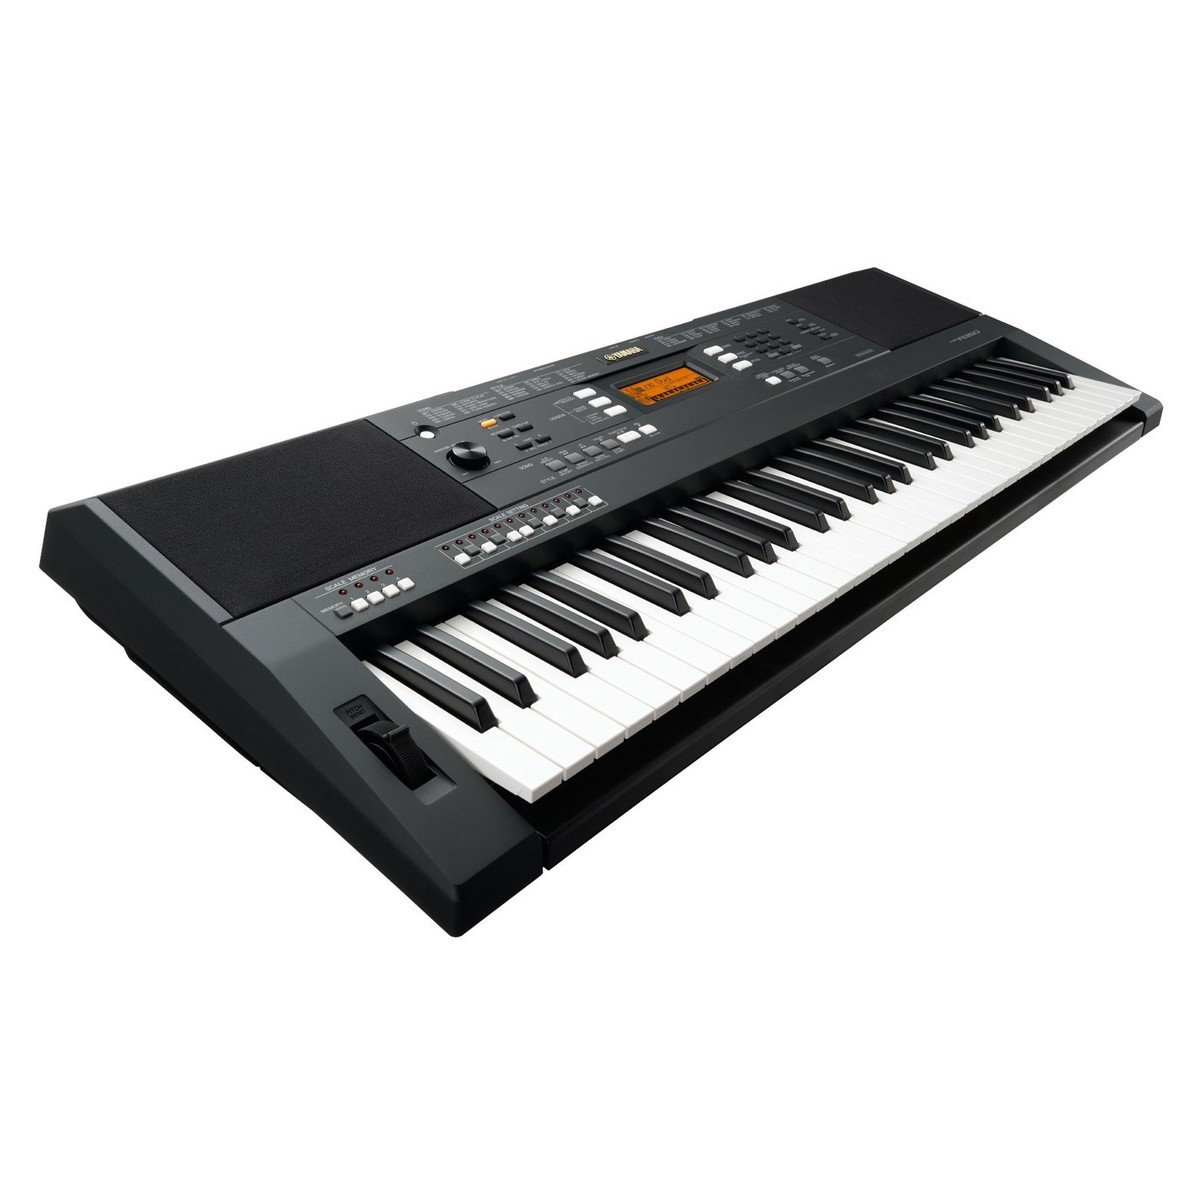 Yamaha psr a350 oriental portable keyboard black at for Yamaha piano keyboard models